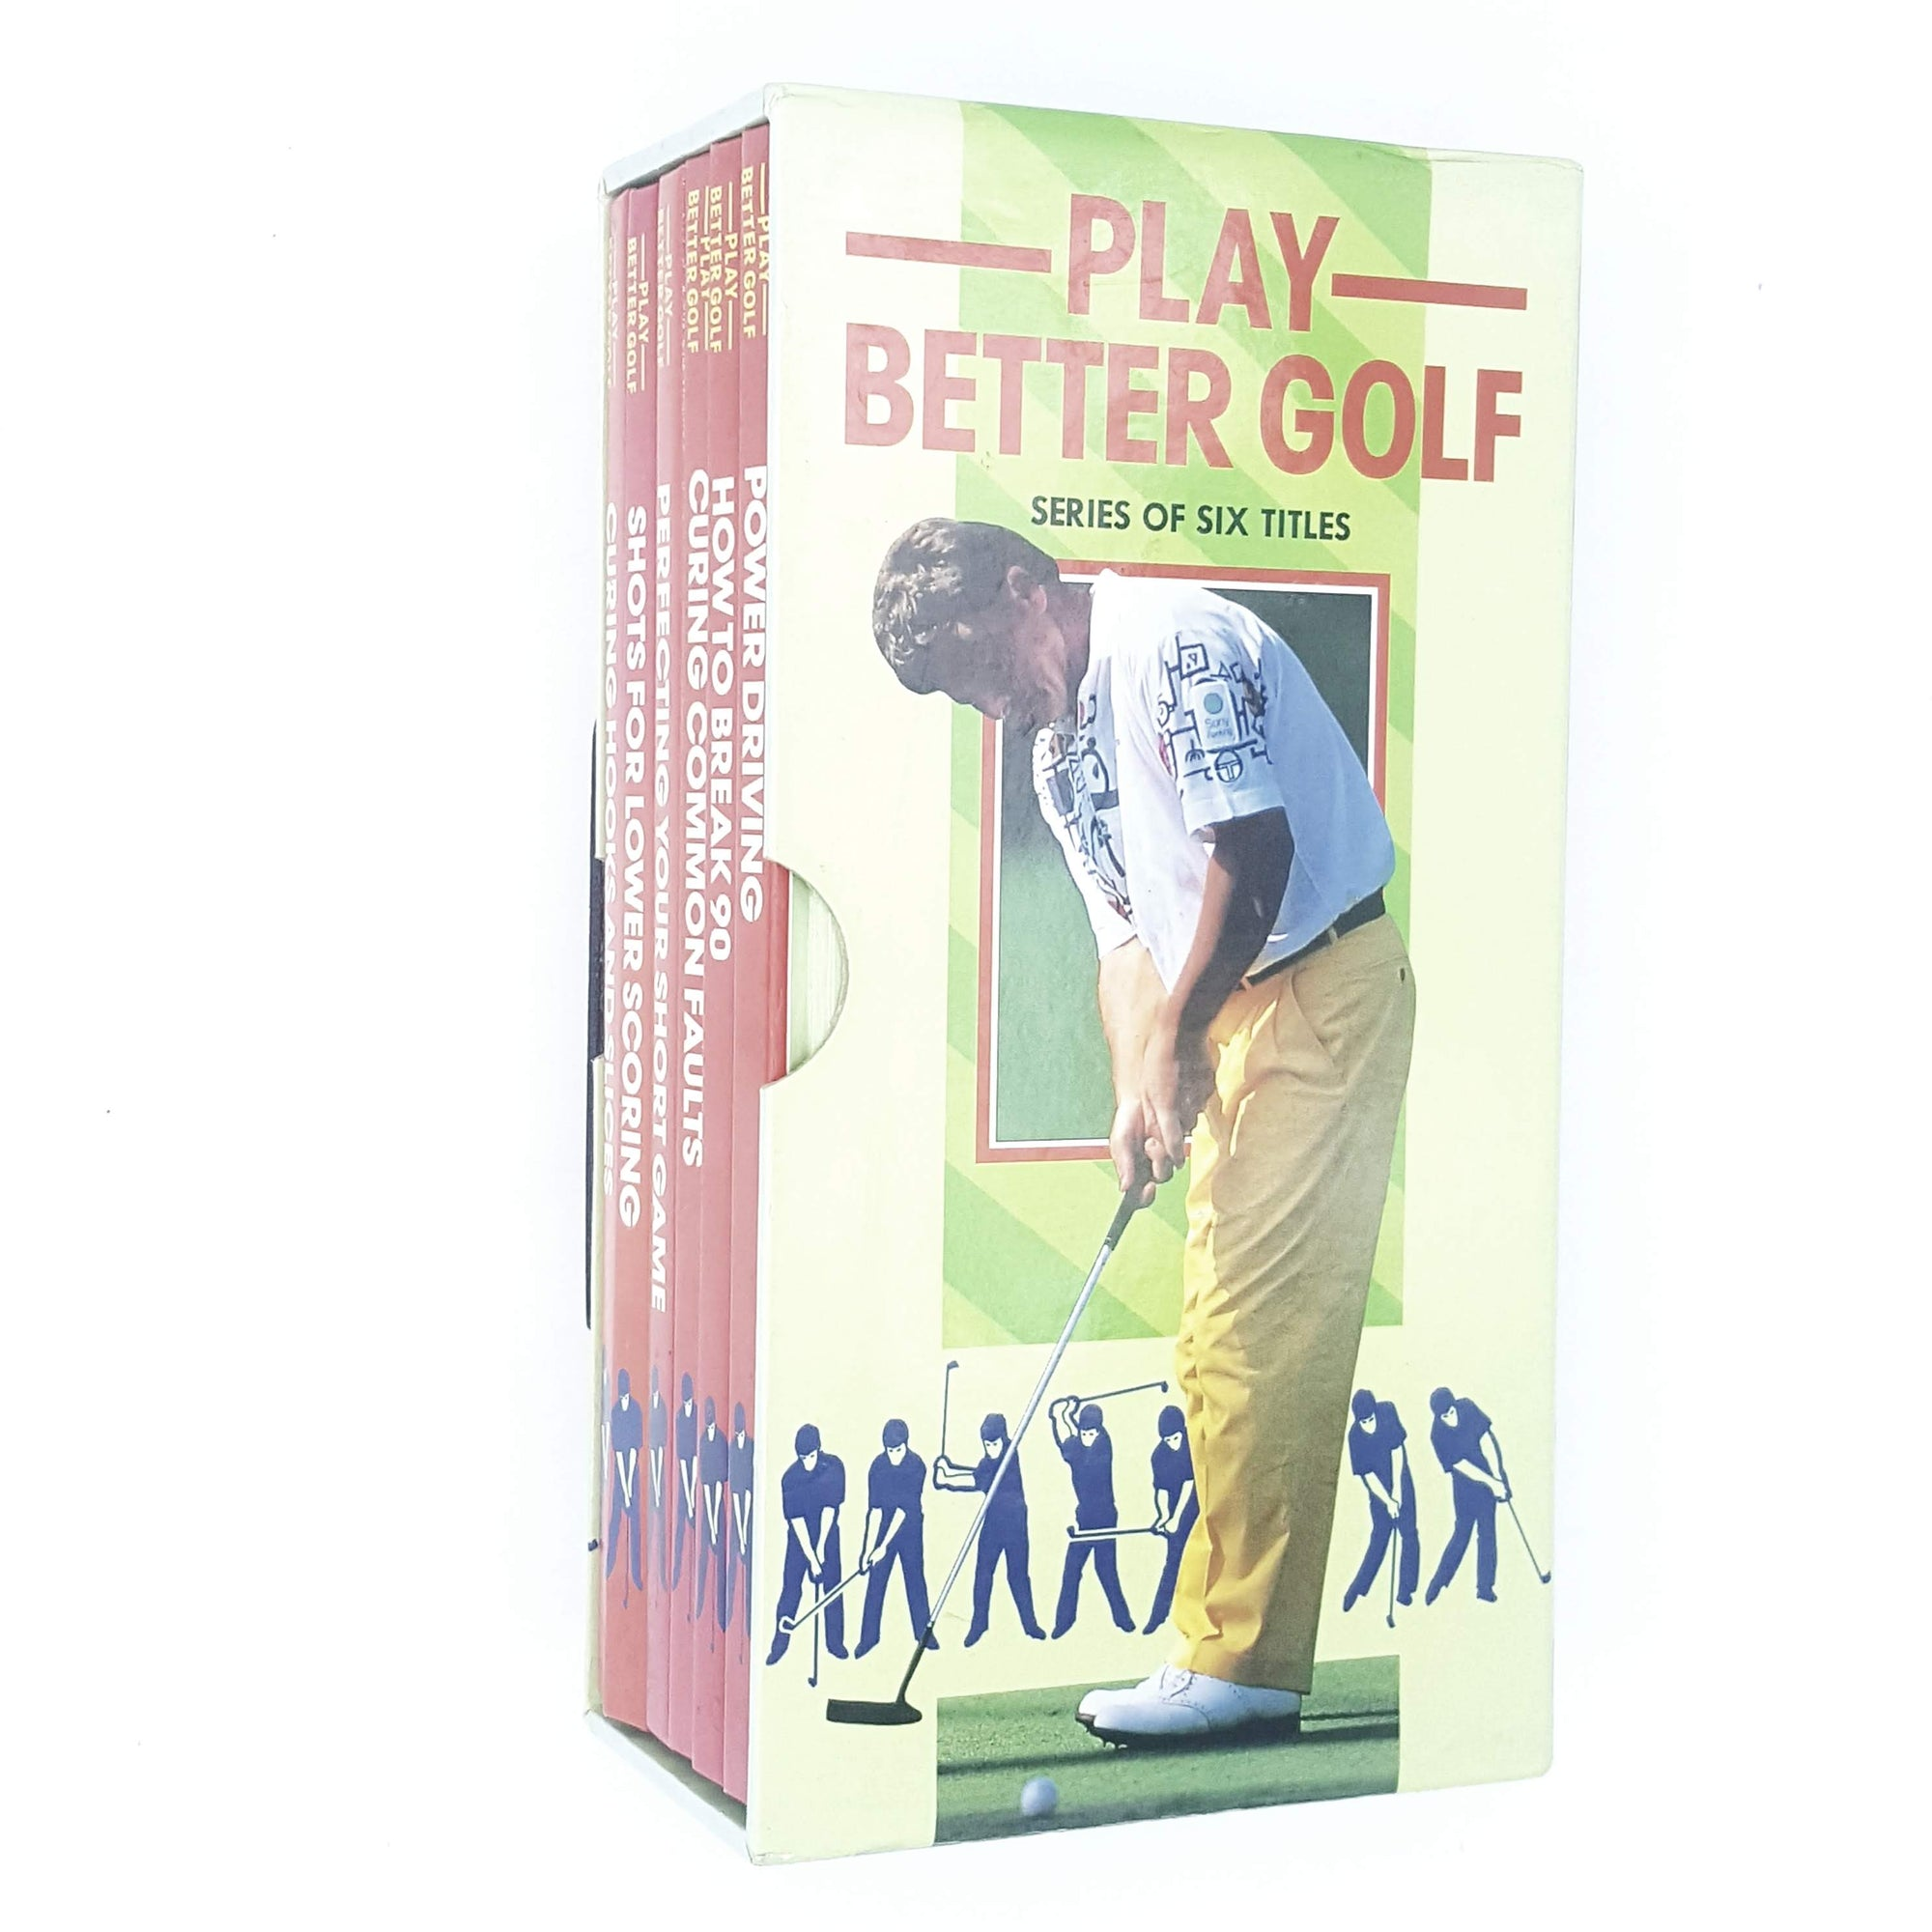 Collection Play Better Golf, illustrated